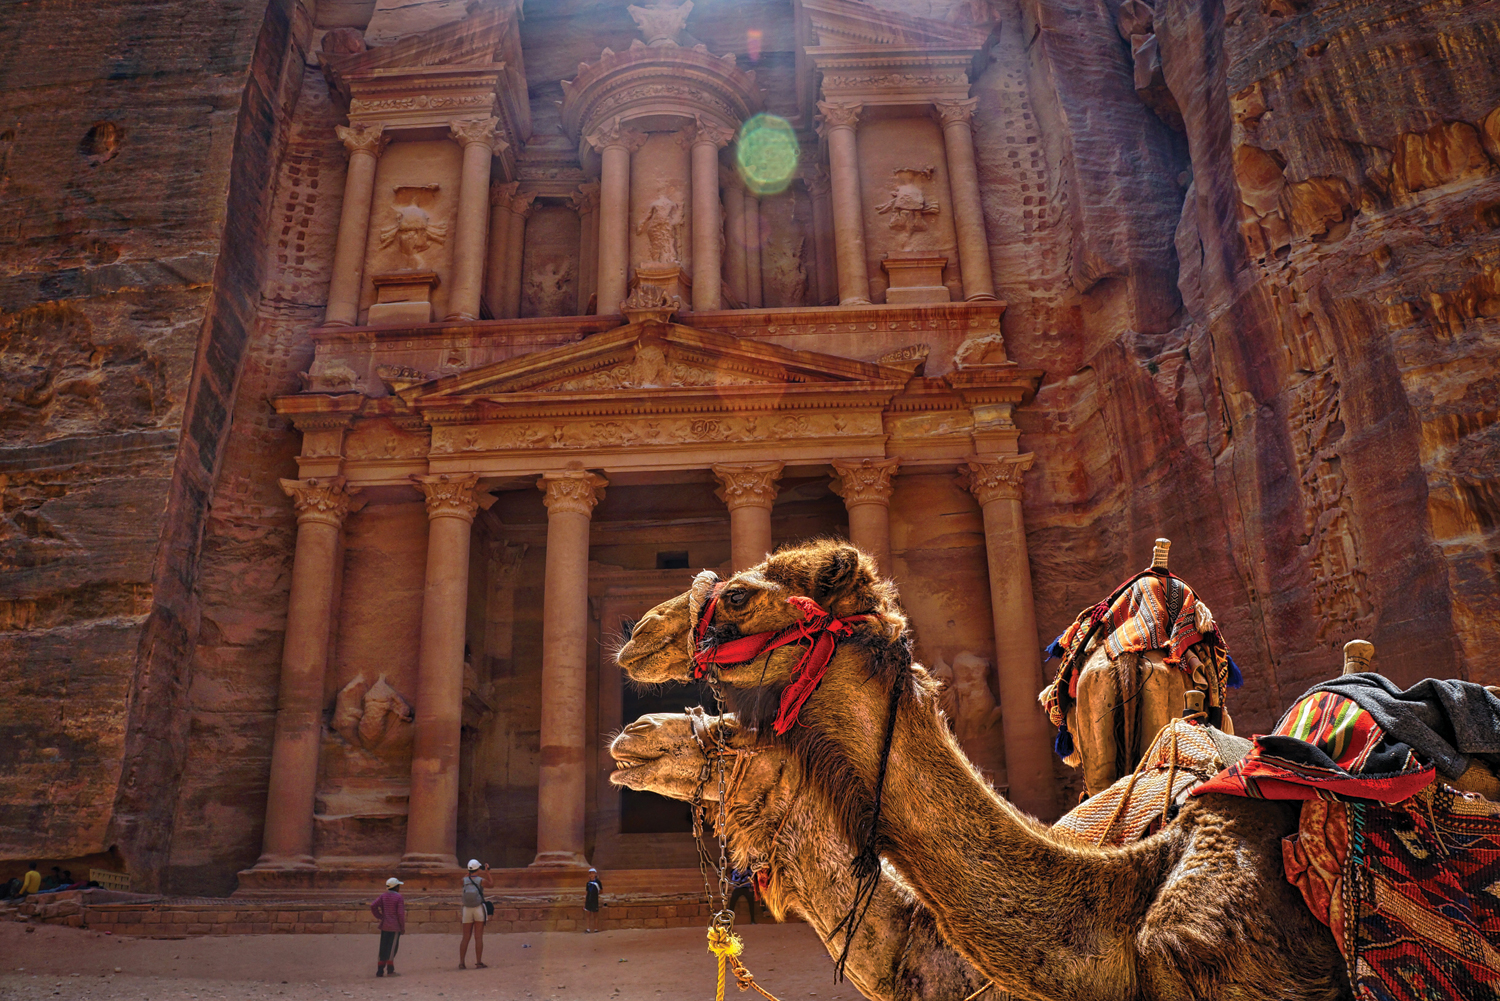 a3c6ccdae63 How to Spend 48 Hours in Petra